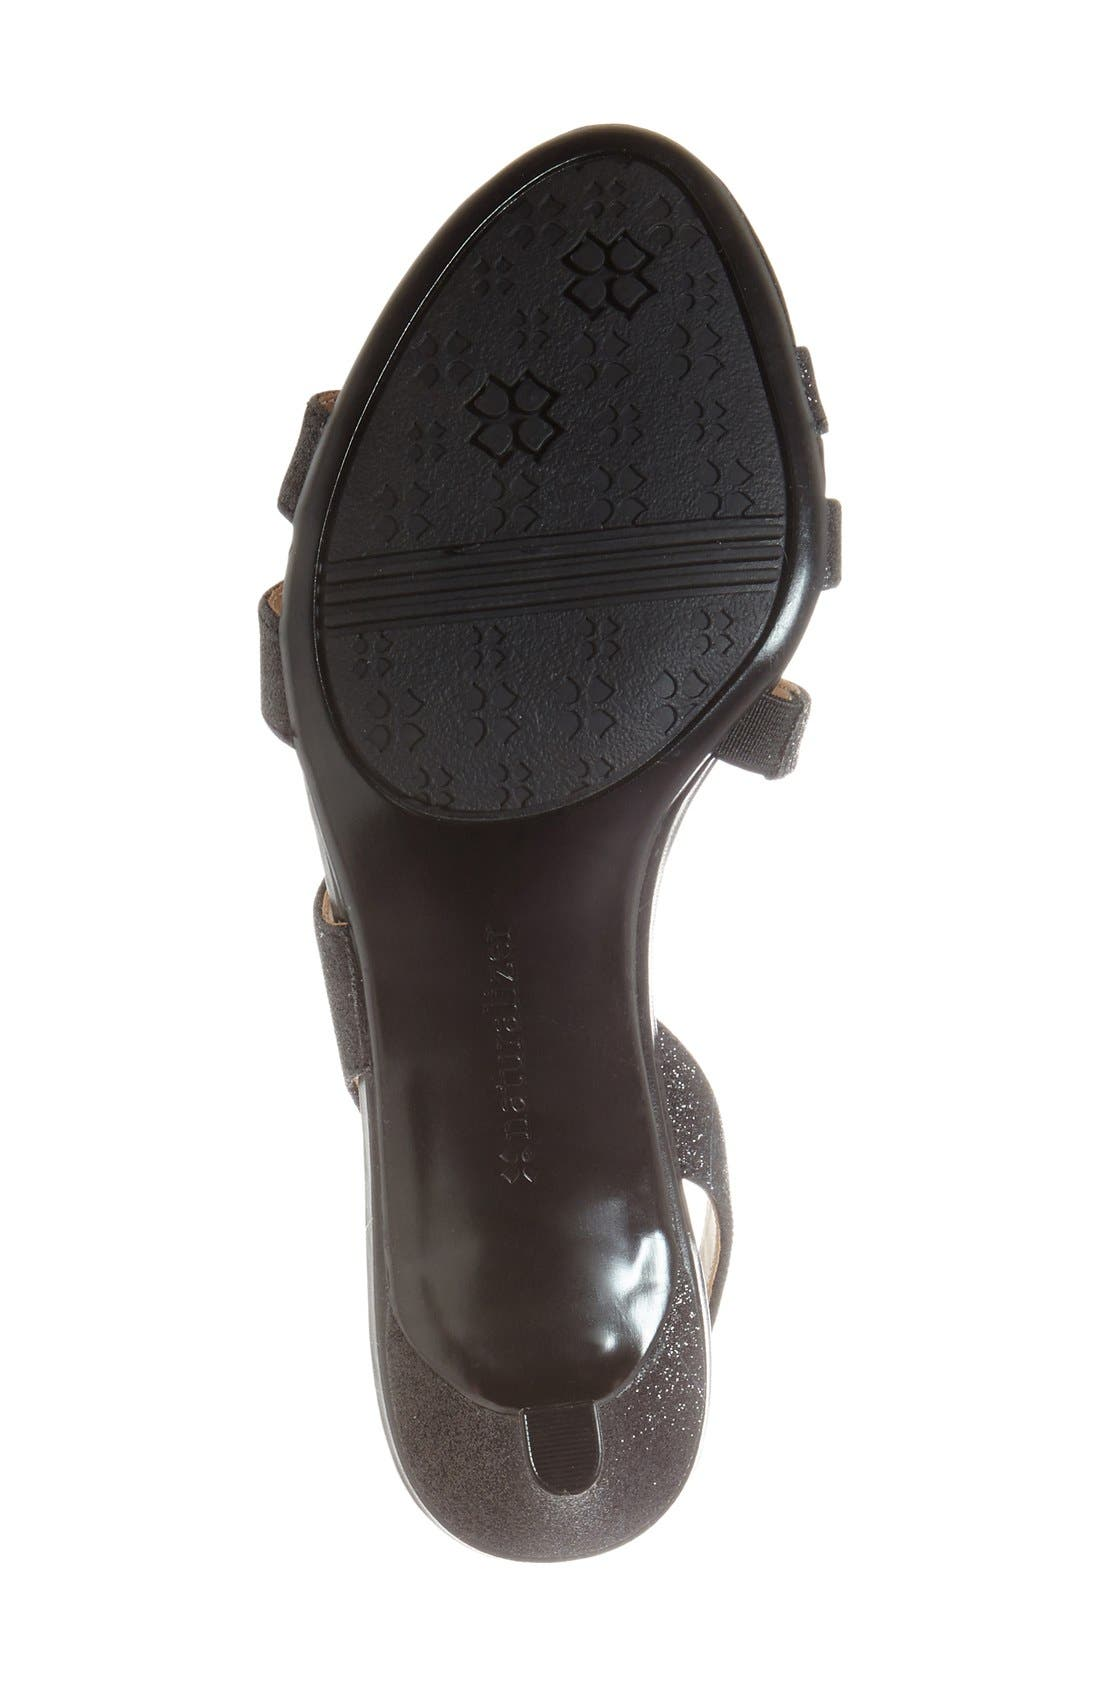 Taimi Sandal,                             Alternate thumbnail 4, color,                             Black Glitter